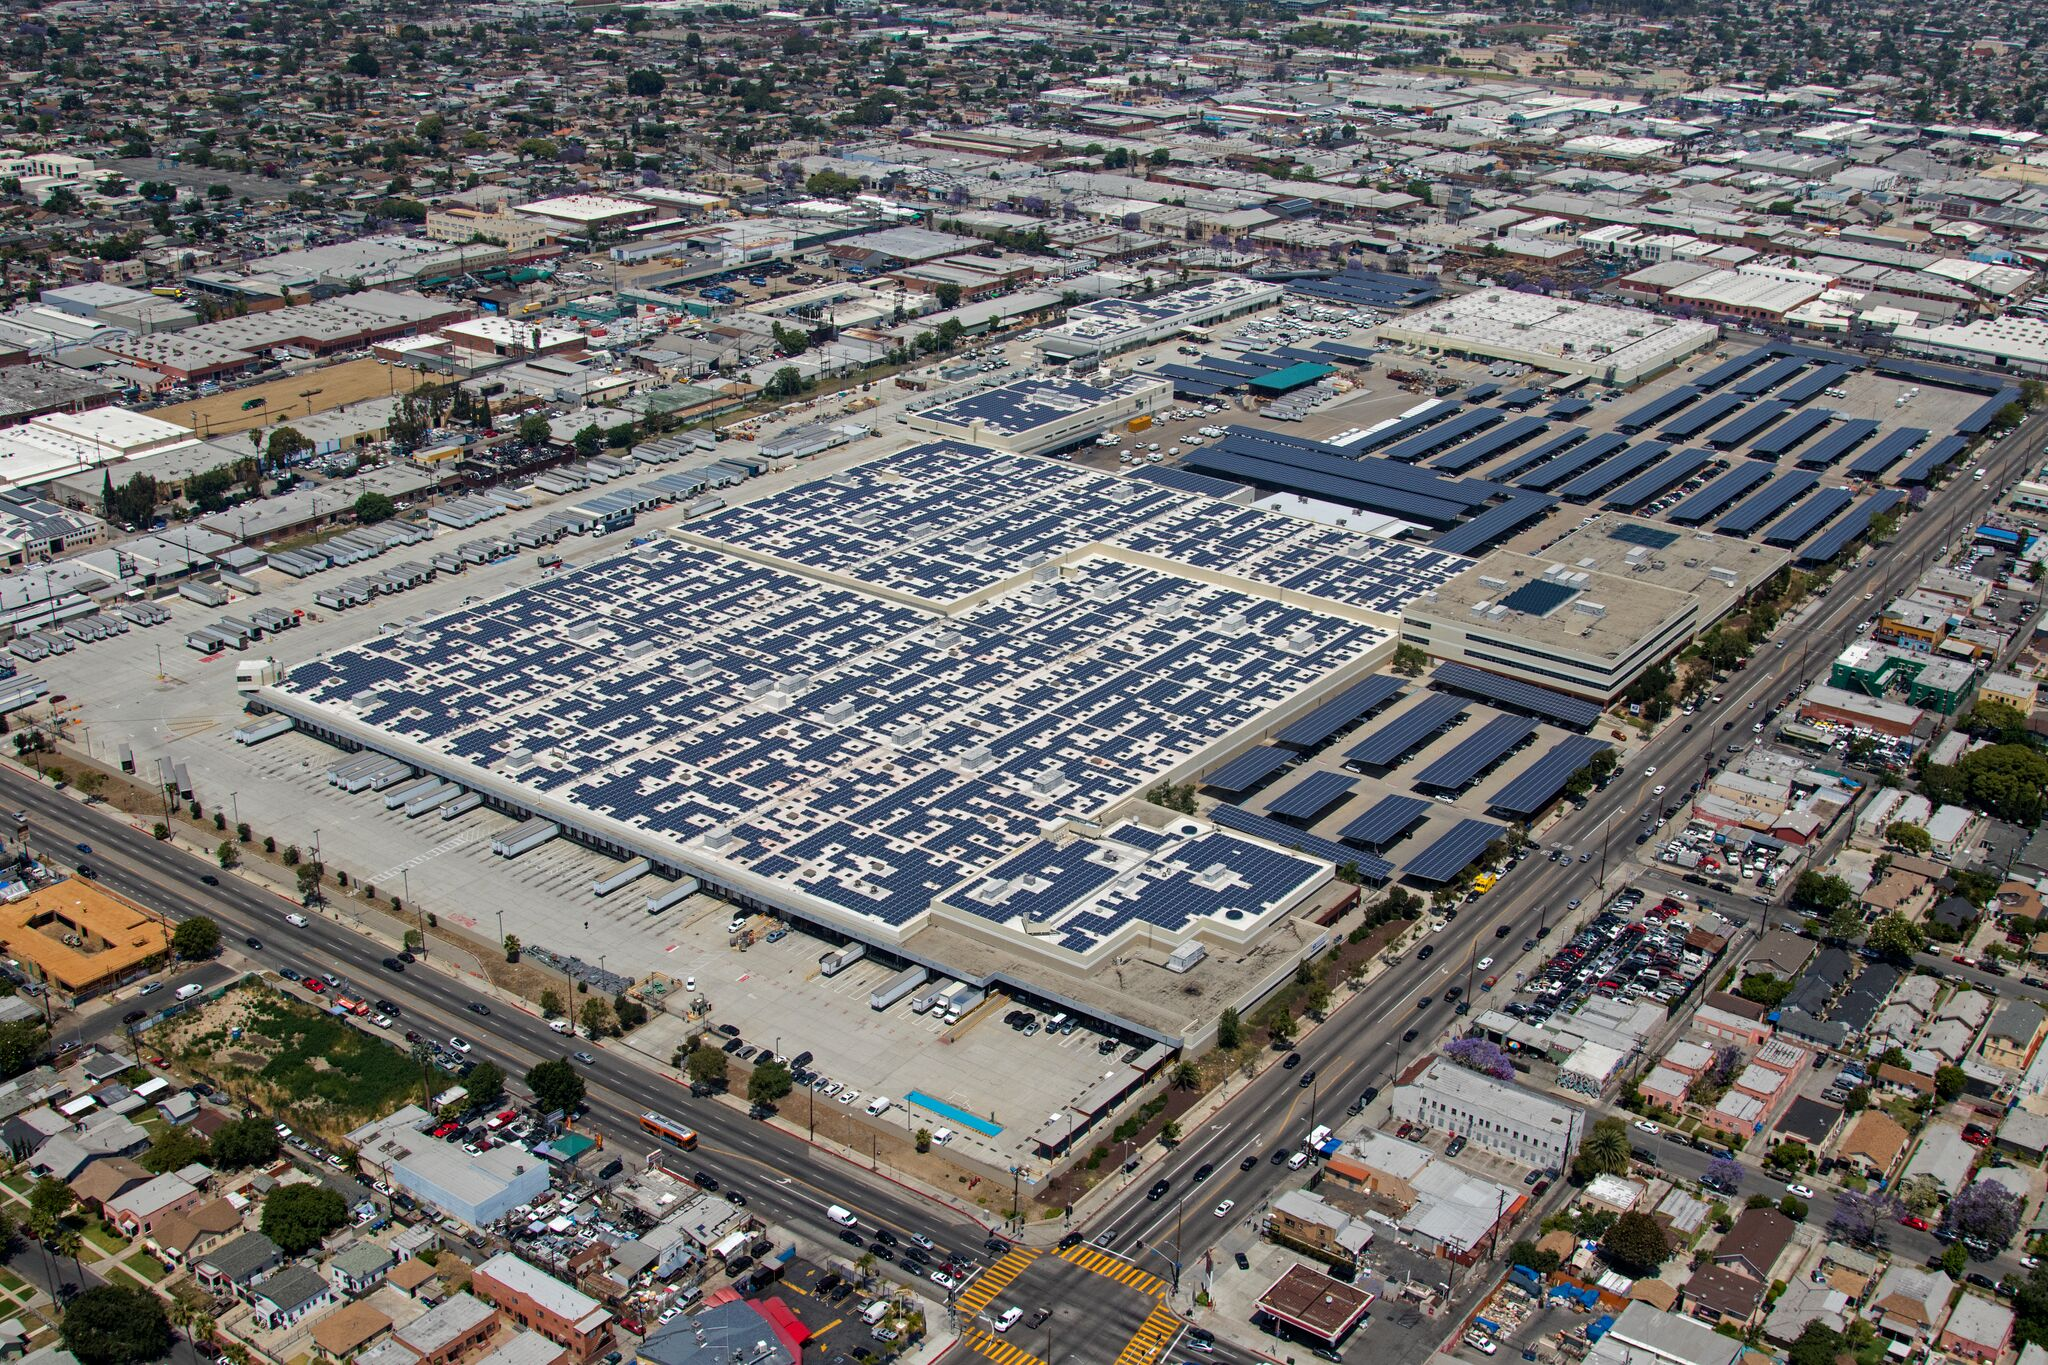 USPS Facility in LADWP territory - True Green Capital